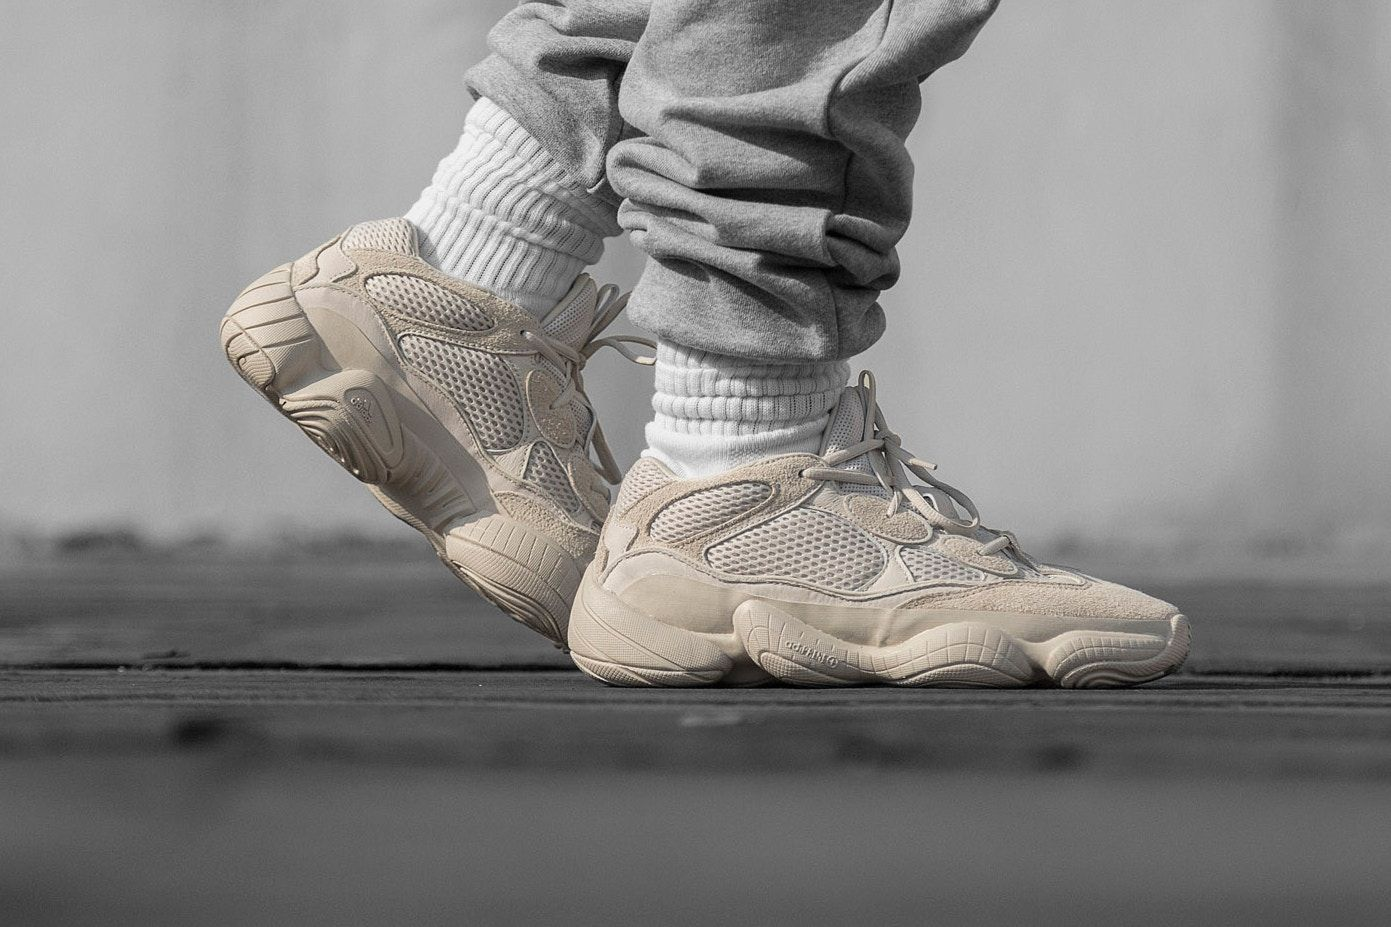 Here's the Official Store List for the adidas YEEZY 500